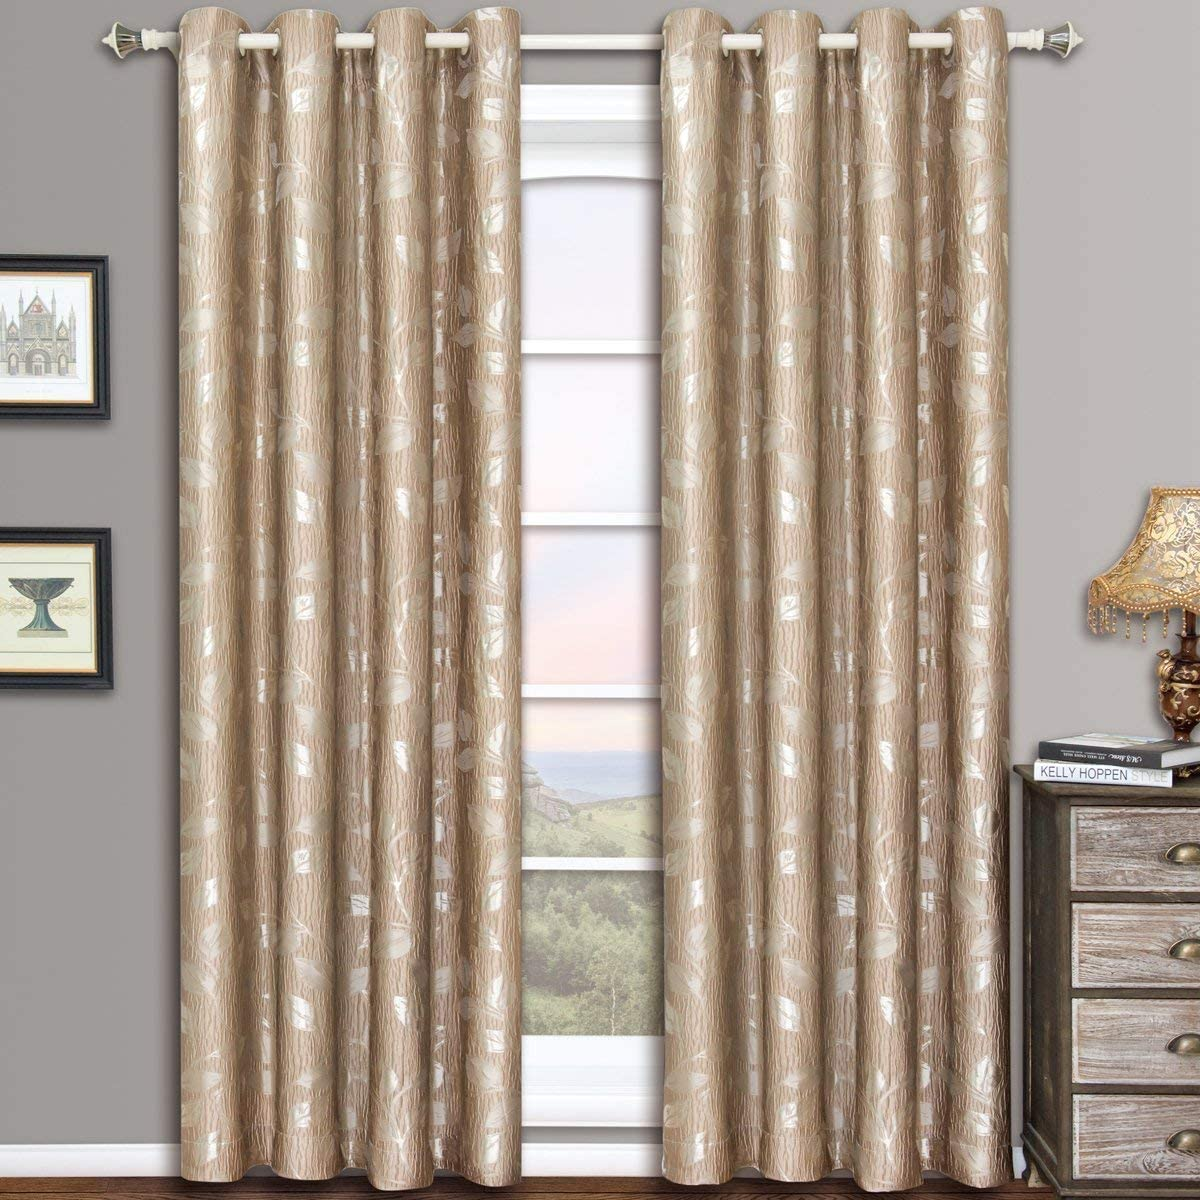 Royal Hotel Charlotte Mocha Grommet Jacquard Window Curtain Panels, Pair Set of 2 Panels, 52×108 inches Each